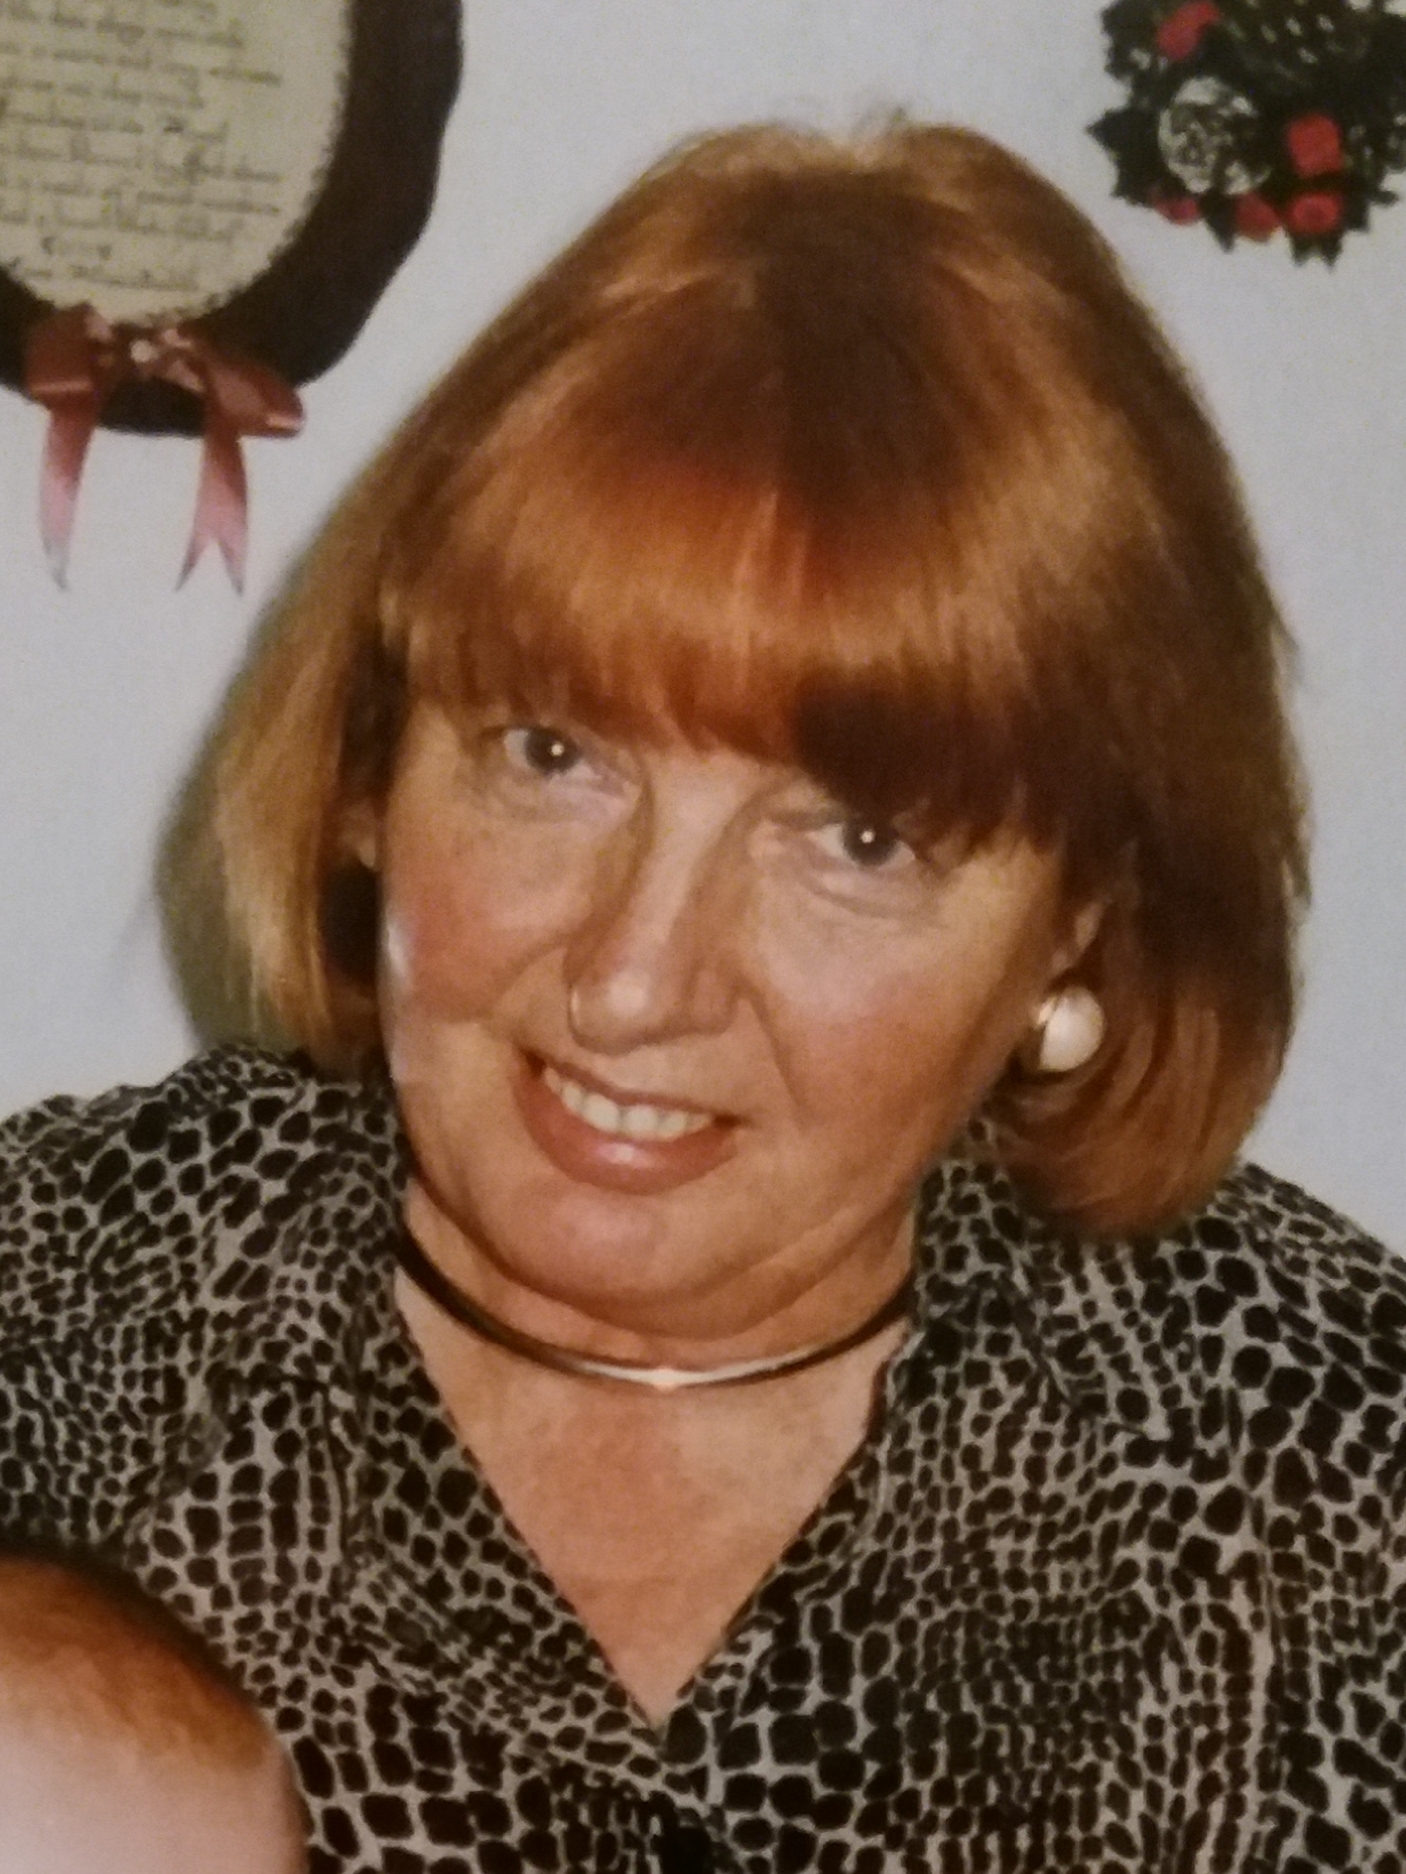 A photo of a middle-aged woman with red hair and a warm smile